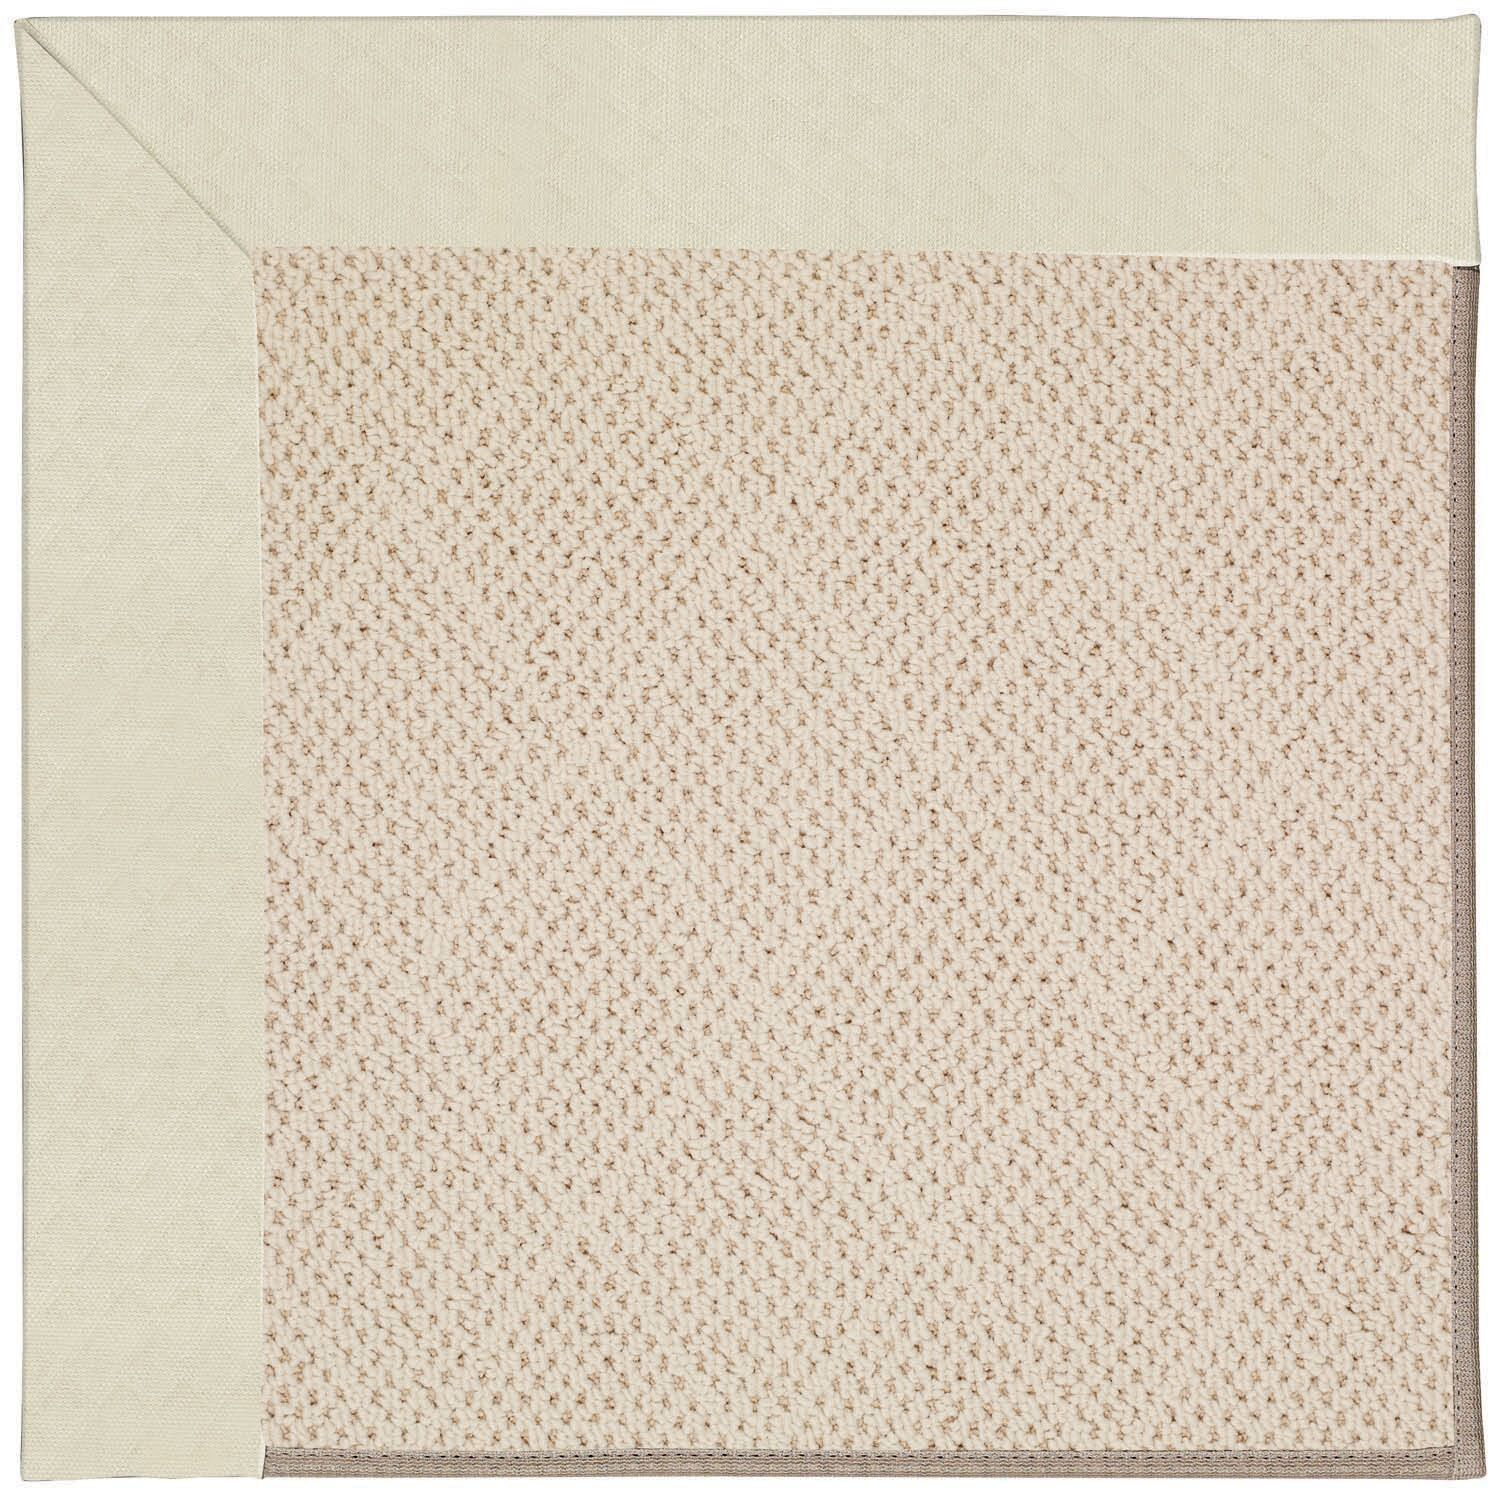 Lisle Cream Indoor/Outdoor Area Rug Rug Size: Rectangle 10' x 14'